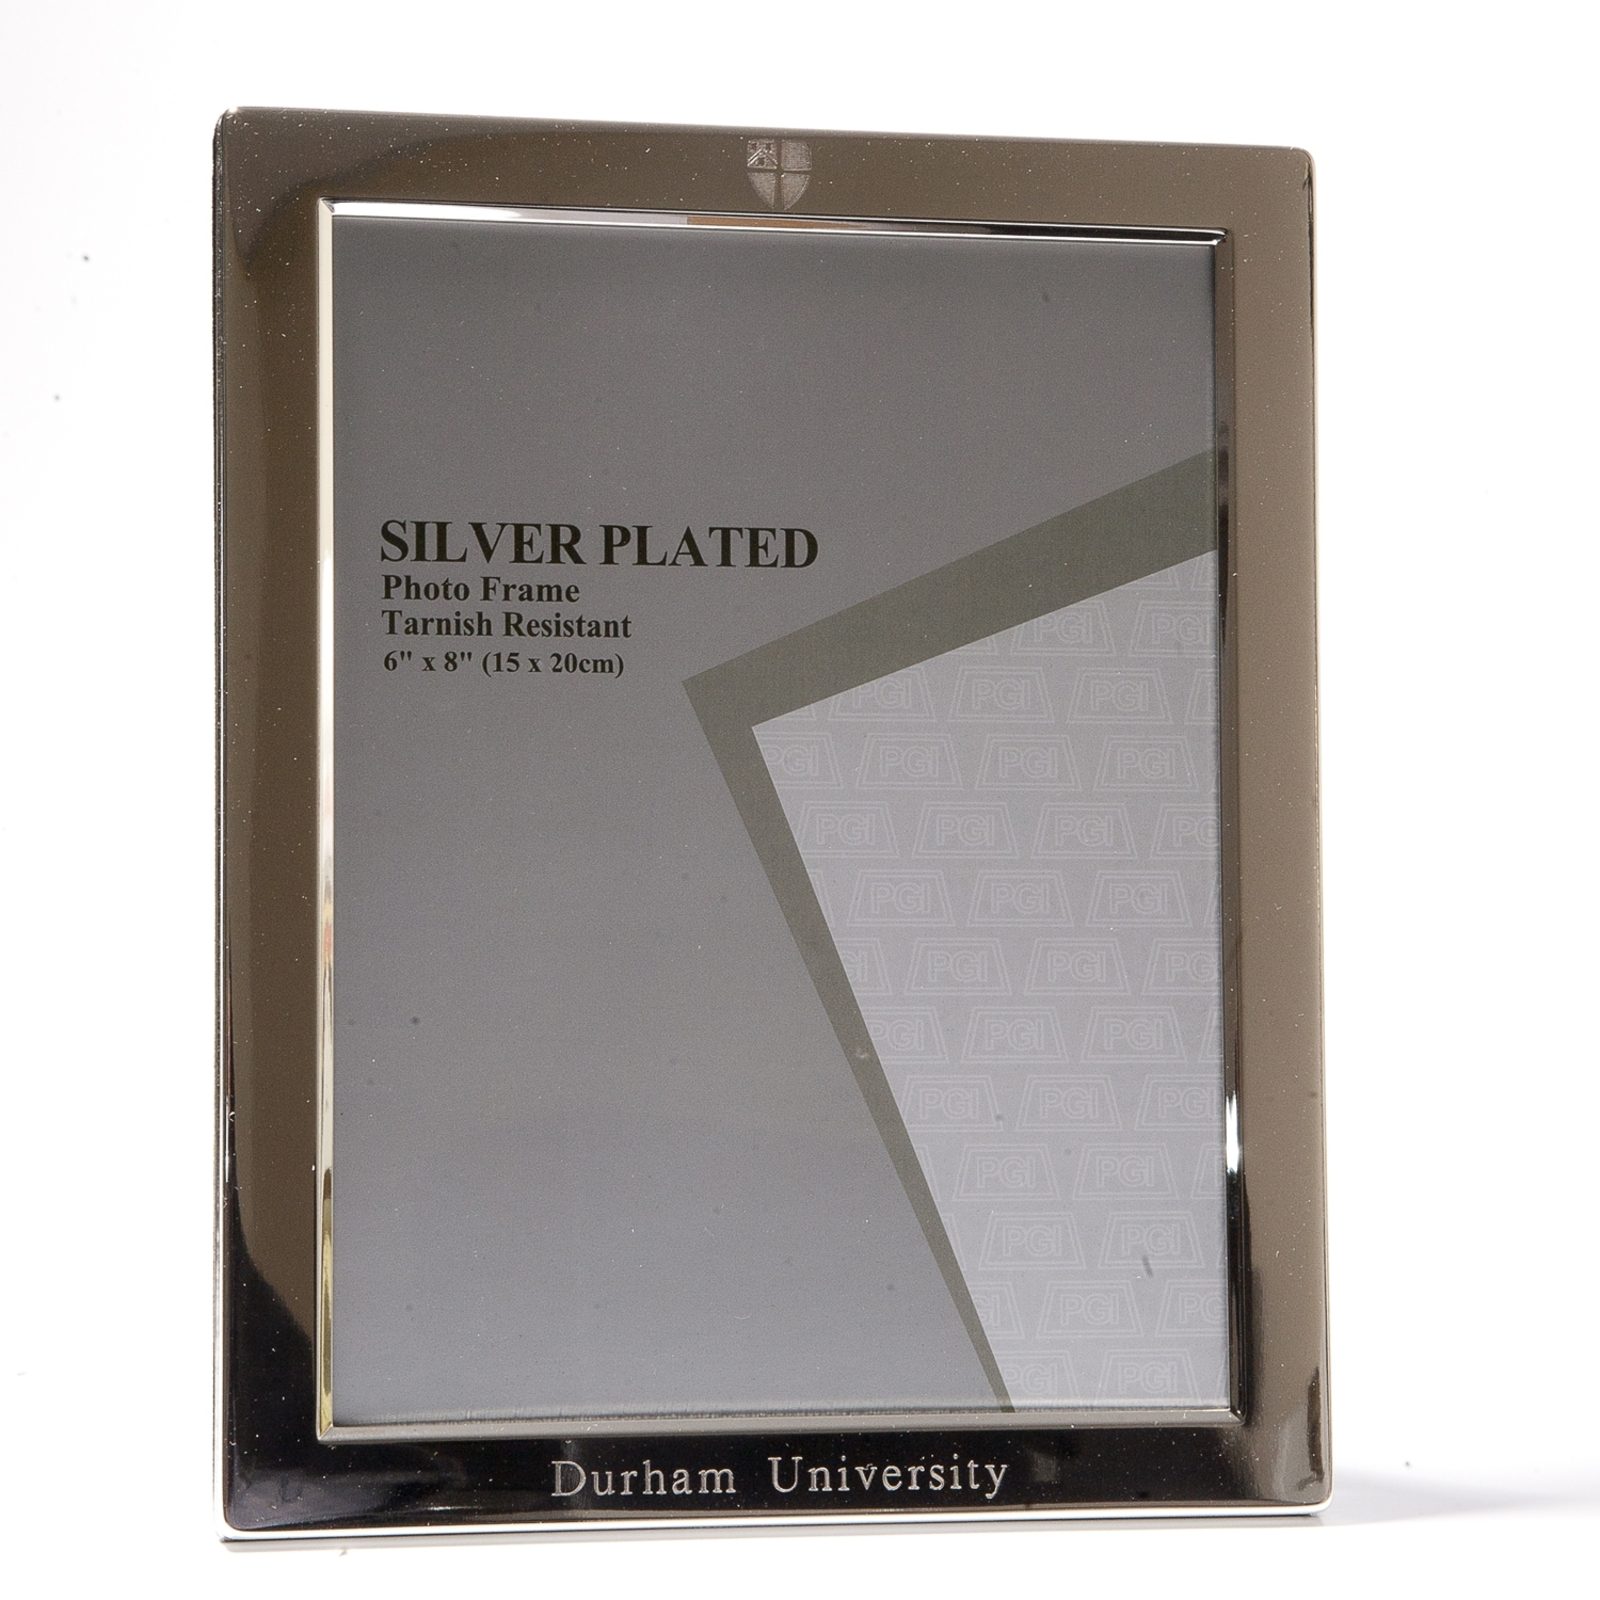 Silver Plated Photo Frame Large At Durham University